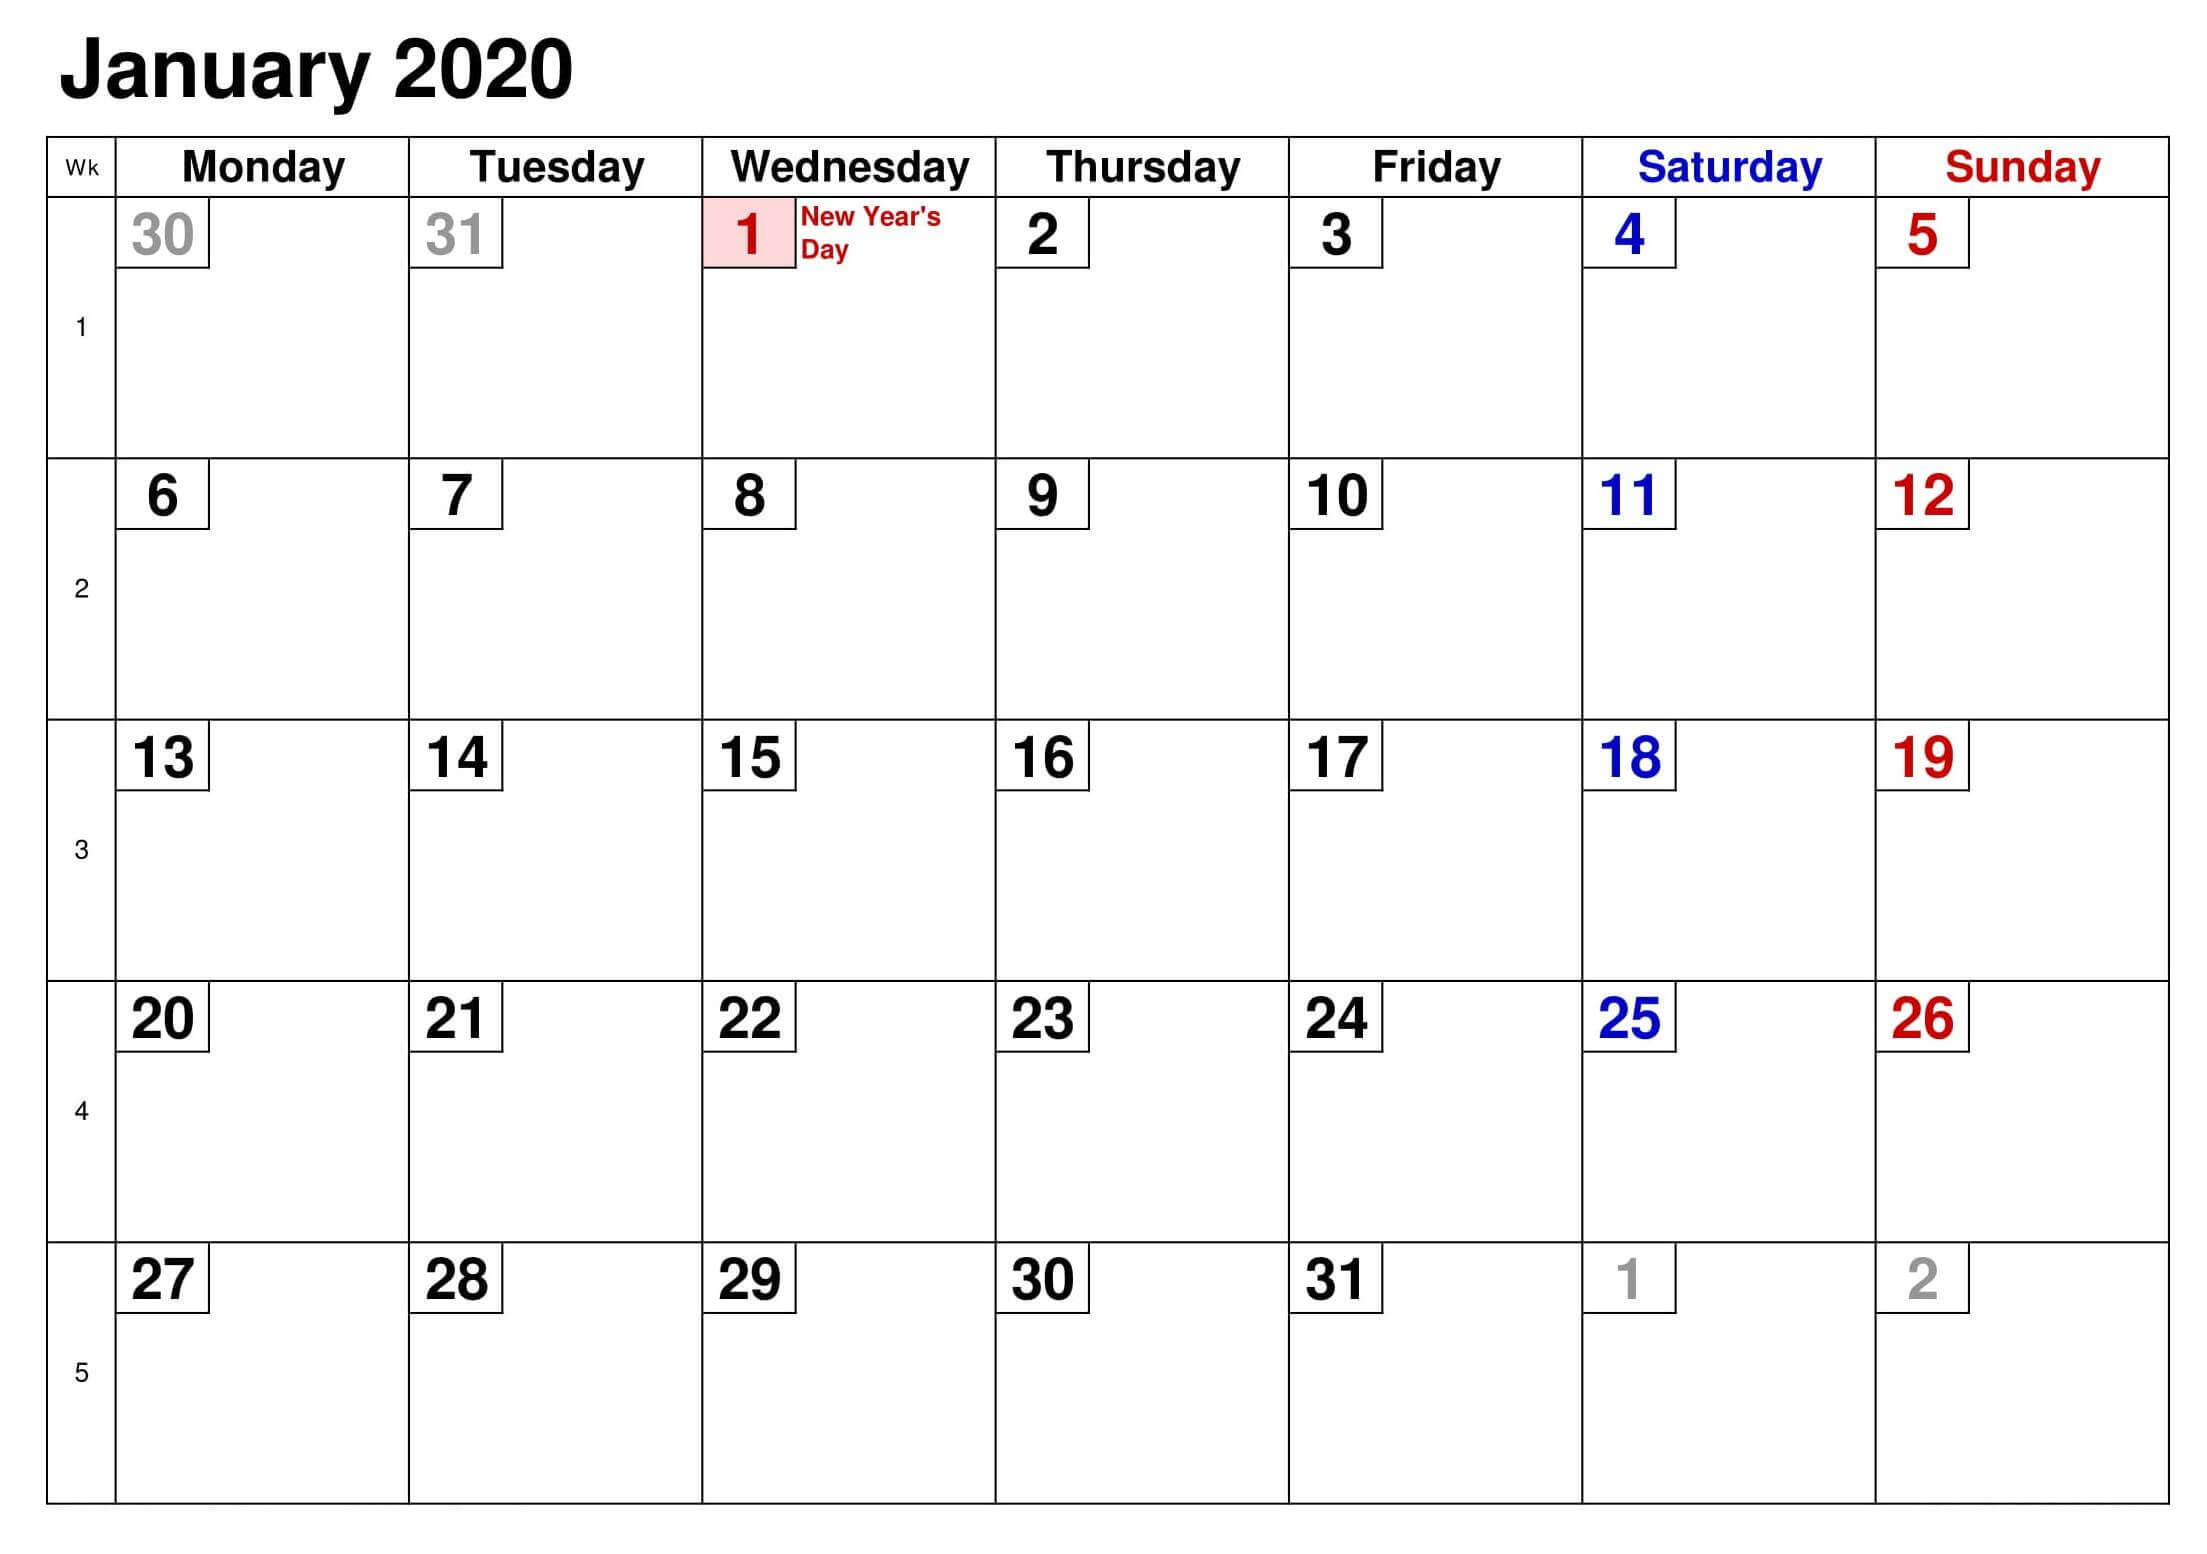 January 2020 US Holidays Calendar